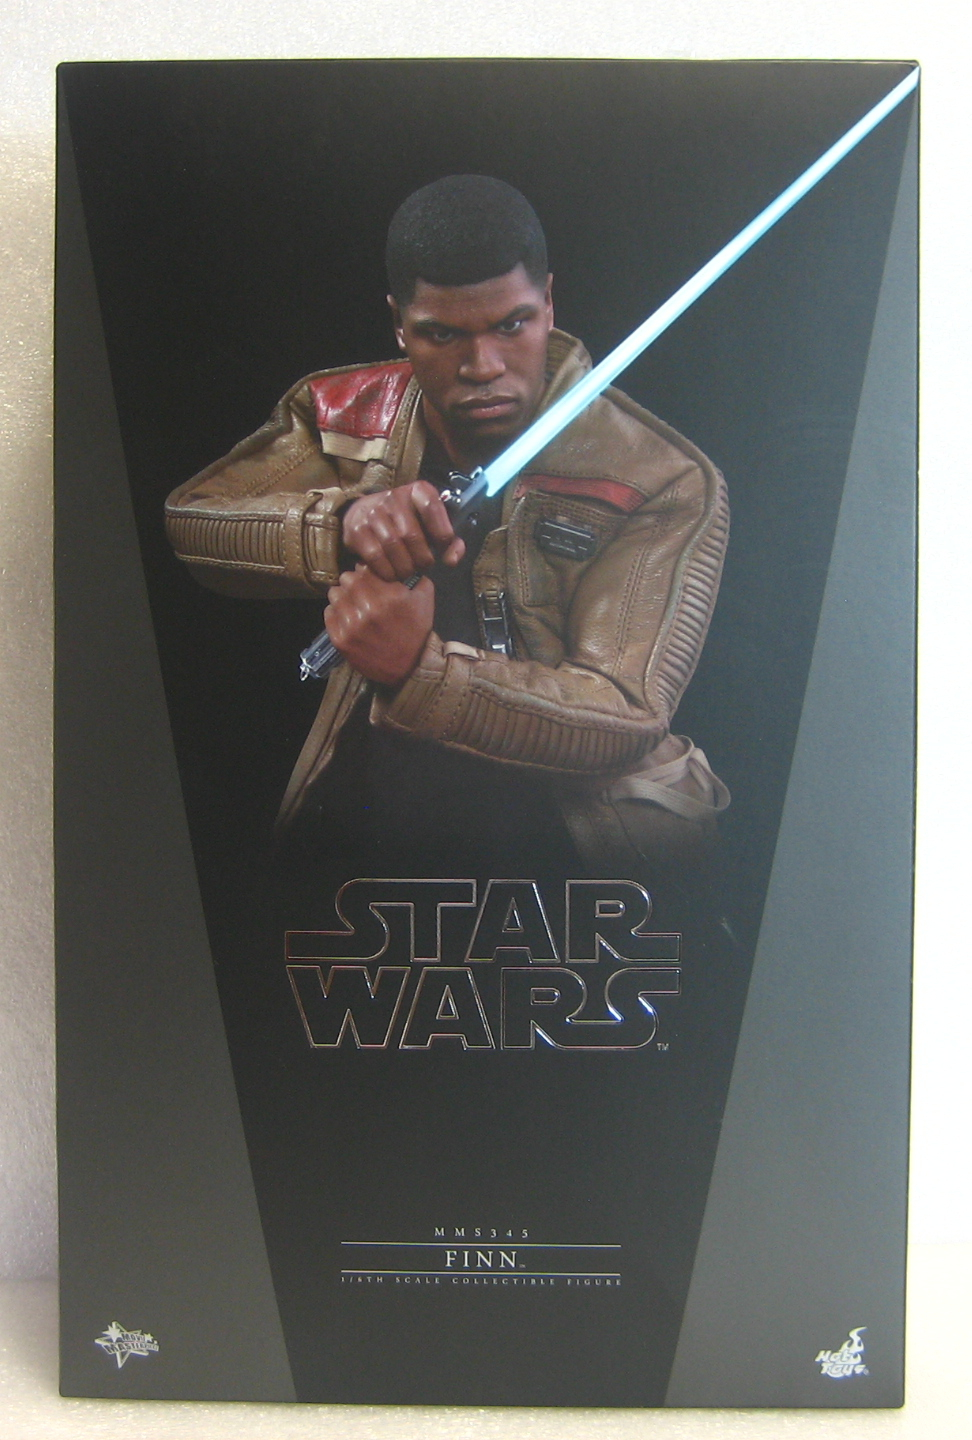 Hot Toys Star Wars The Force Awakens Finn 1:6 Scale Figure